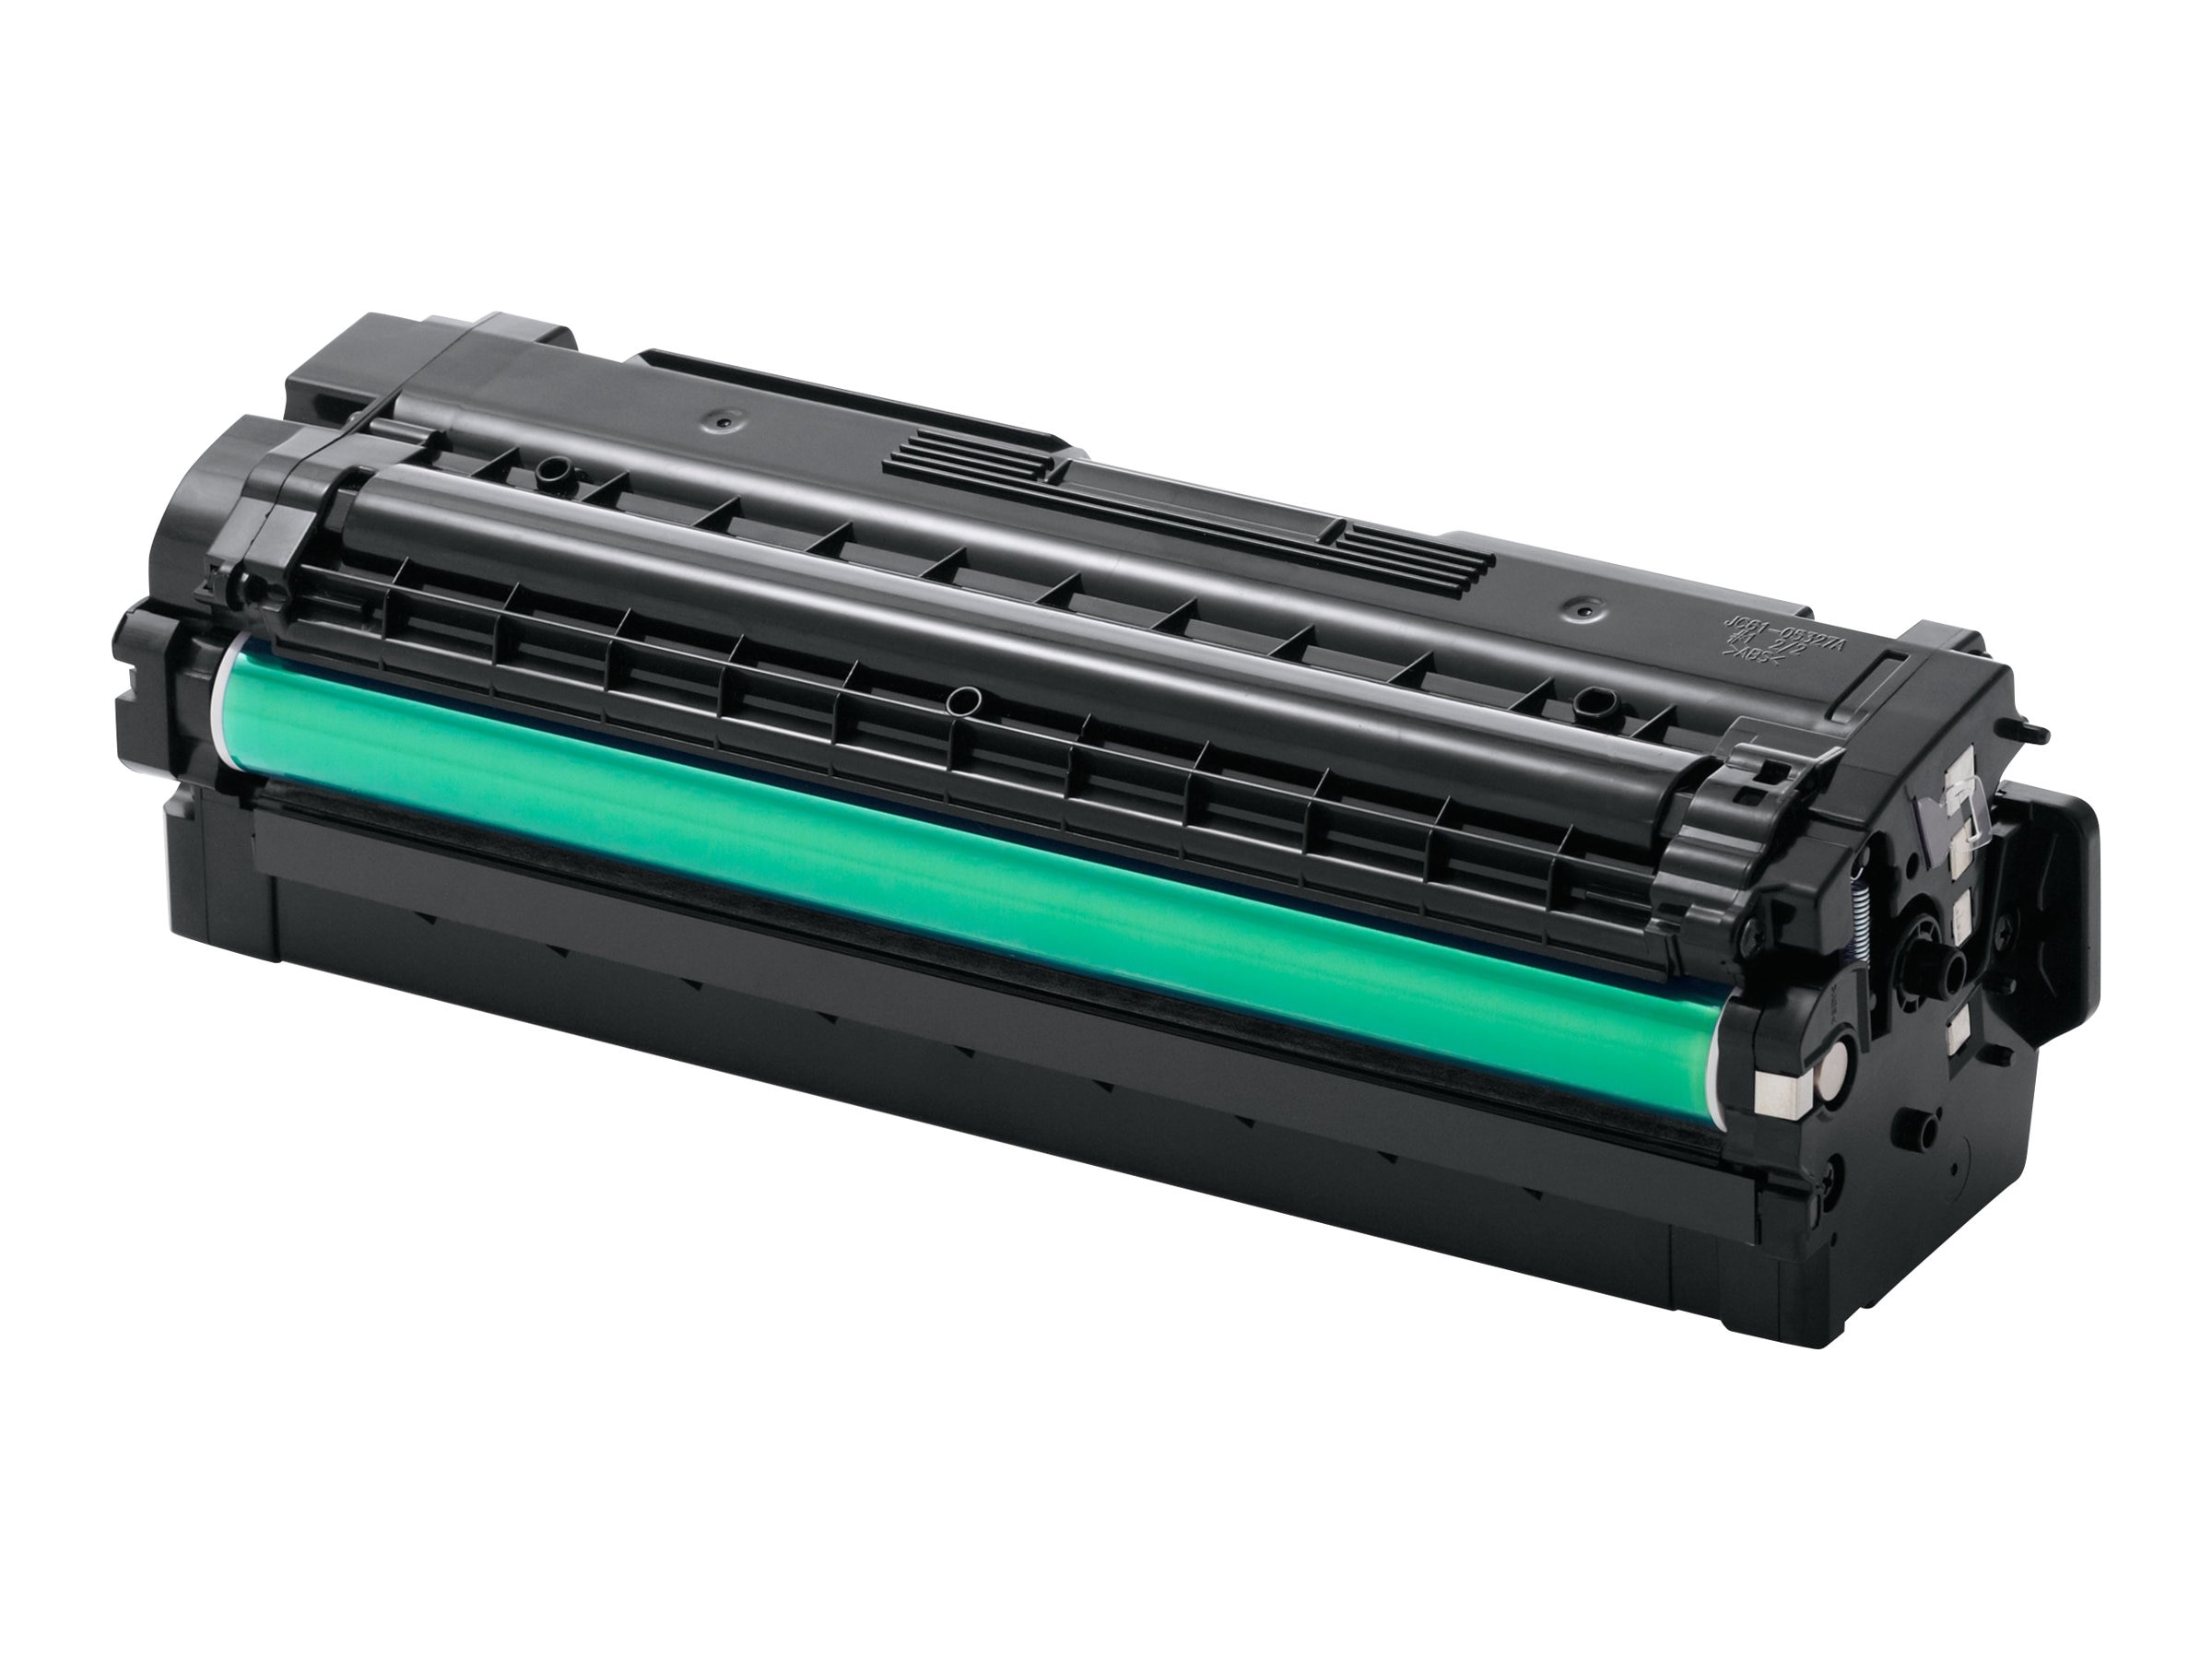 Samsung Black Toner Cartridge for ProXpress C2620DW & C2670FW, CLT-K505L/XAA, 17736444, Toner and Imaging Components